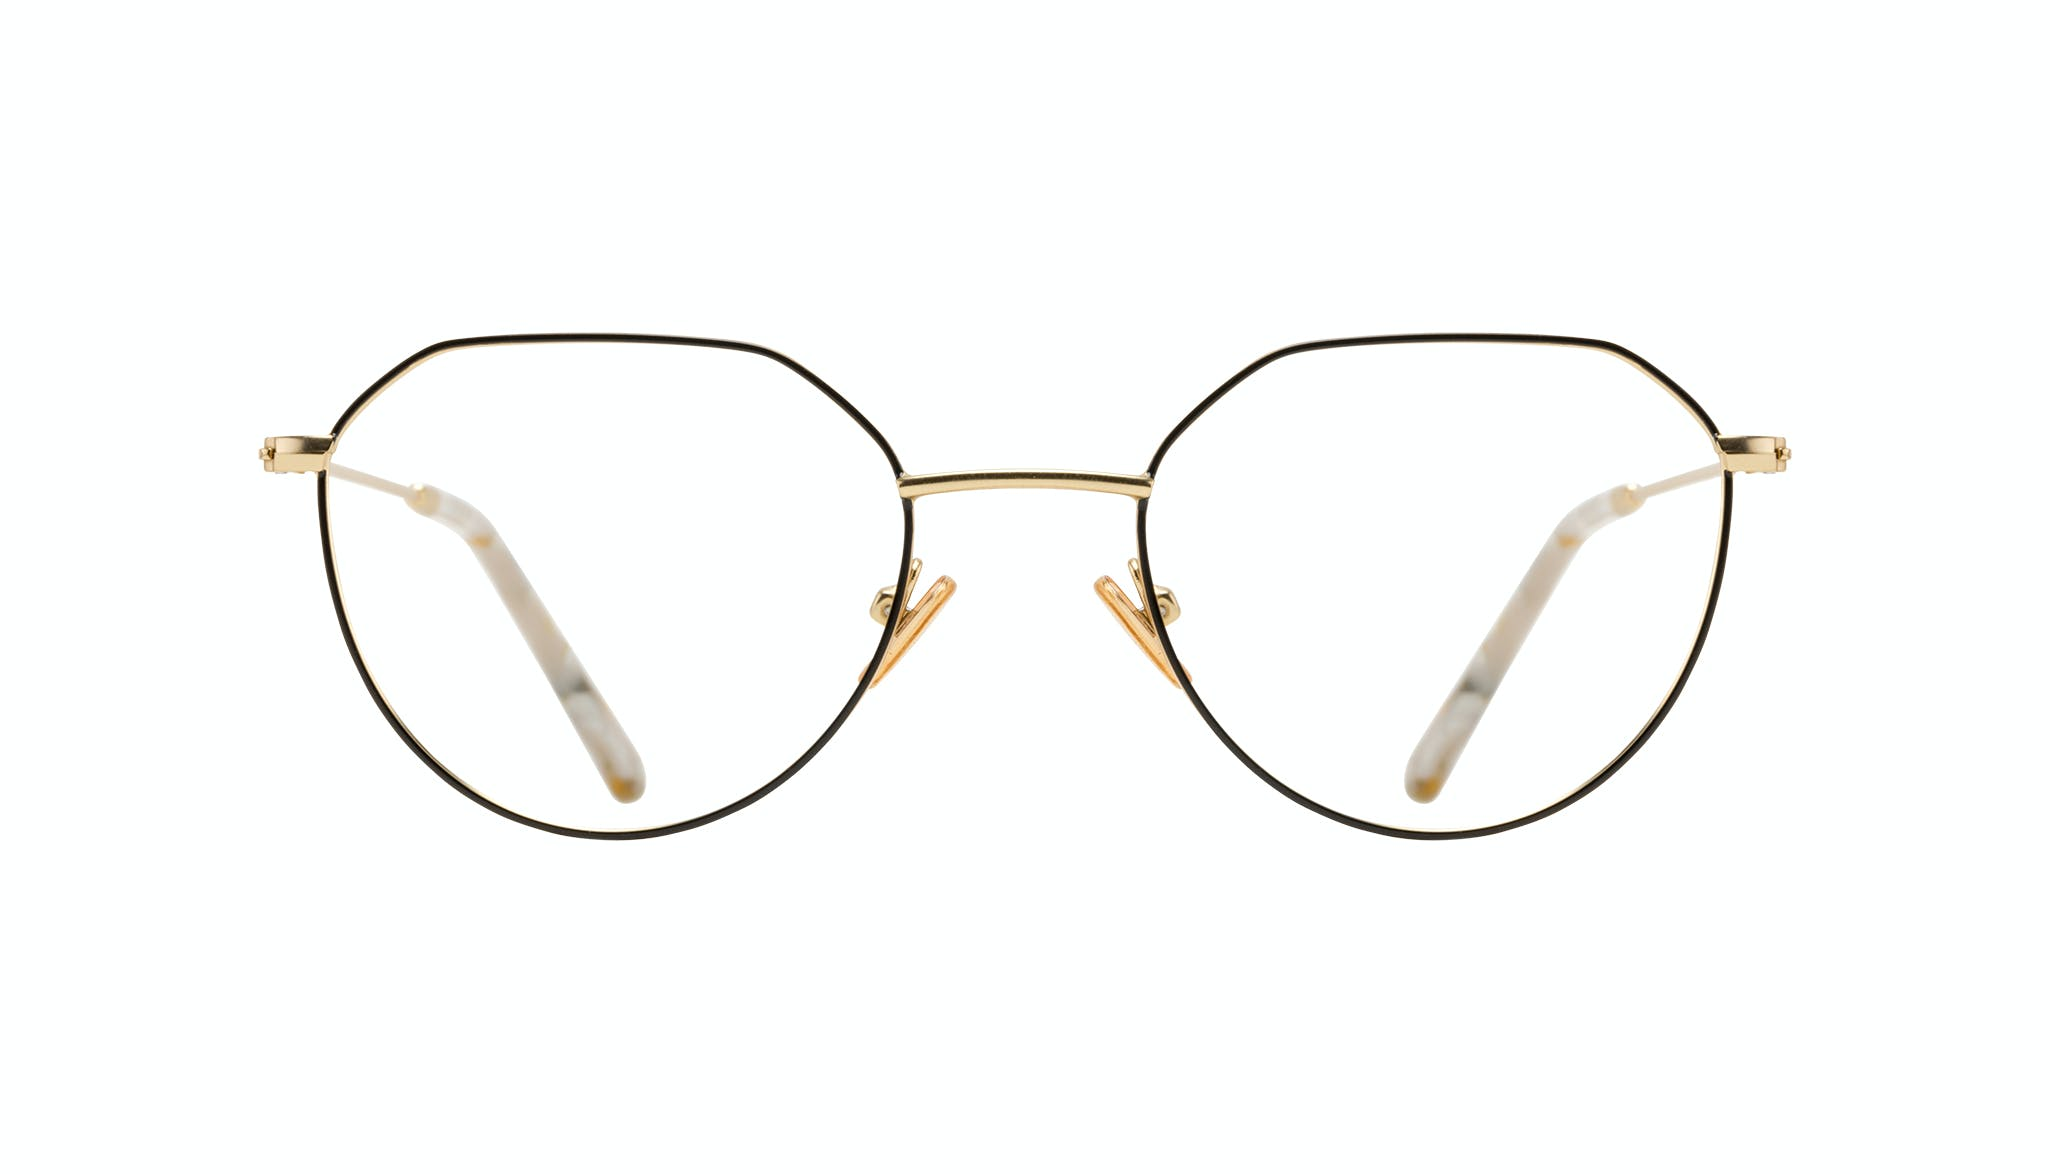 Affordable Fashion Glasses Round Eyeglasses Women Prism Deep Gold Front